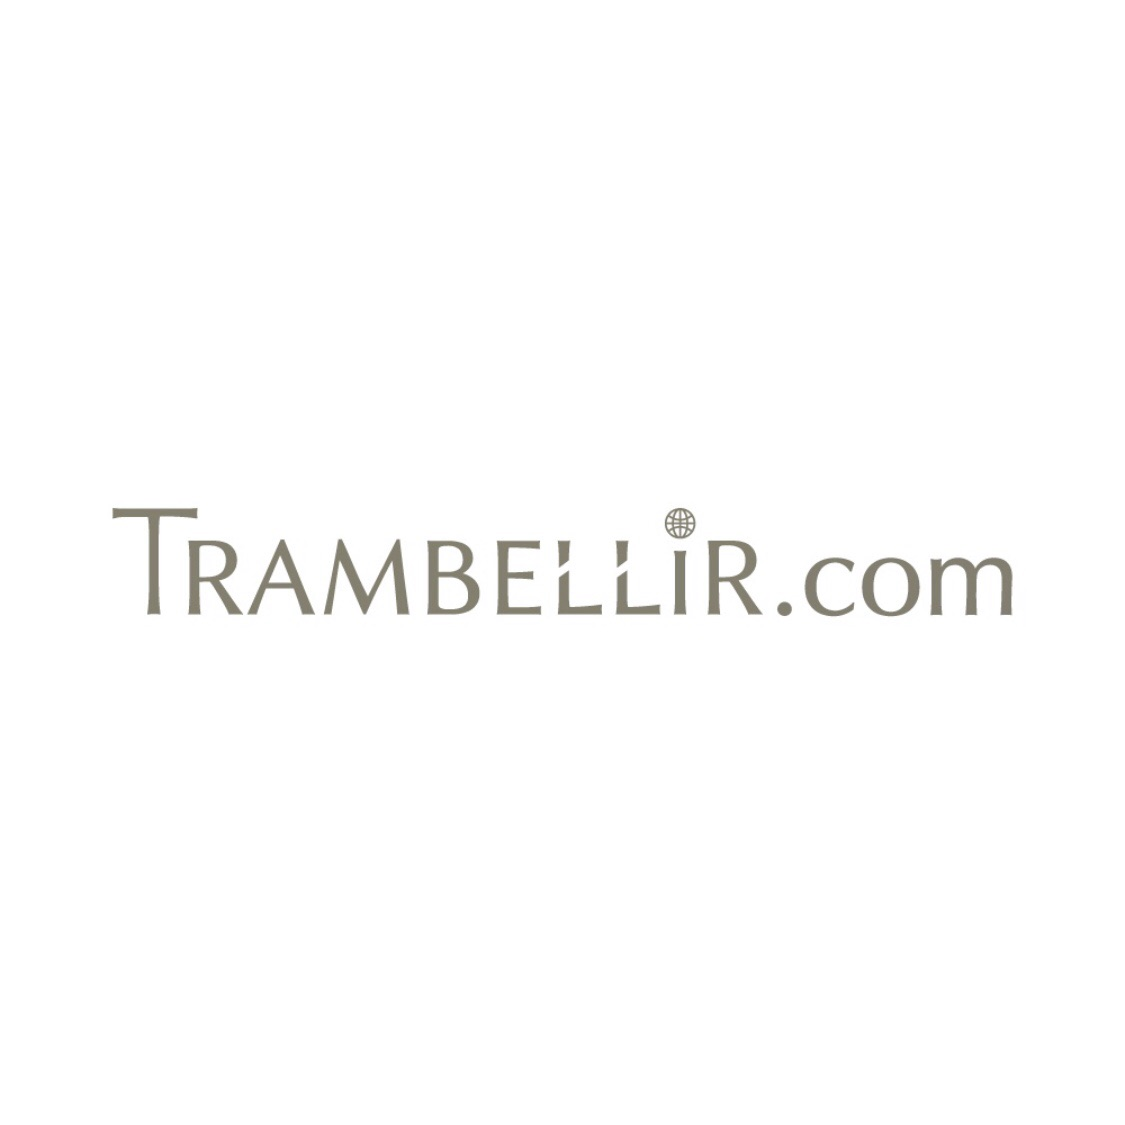 /startup-interview-with-so-iizuka-trambellirs-co-founder-and-ceo feature image